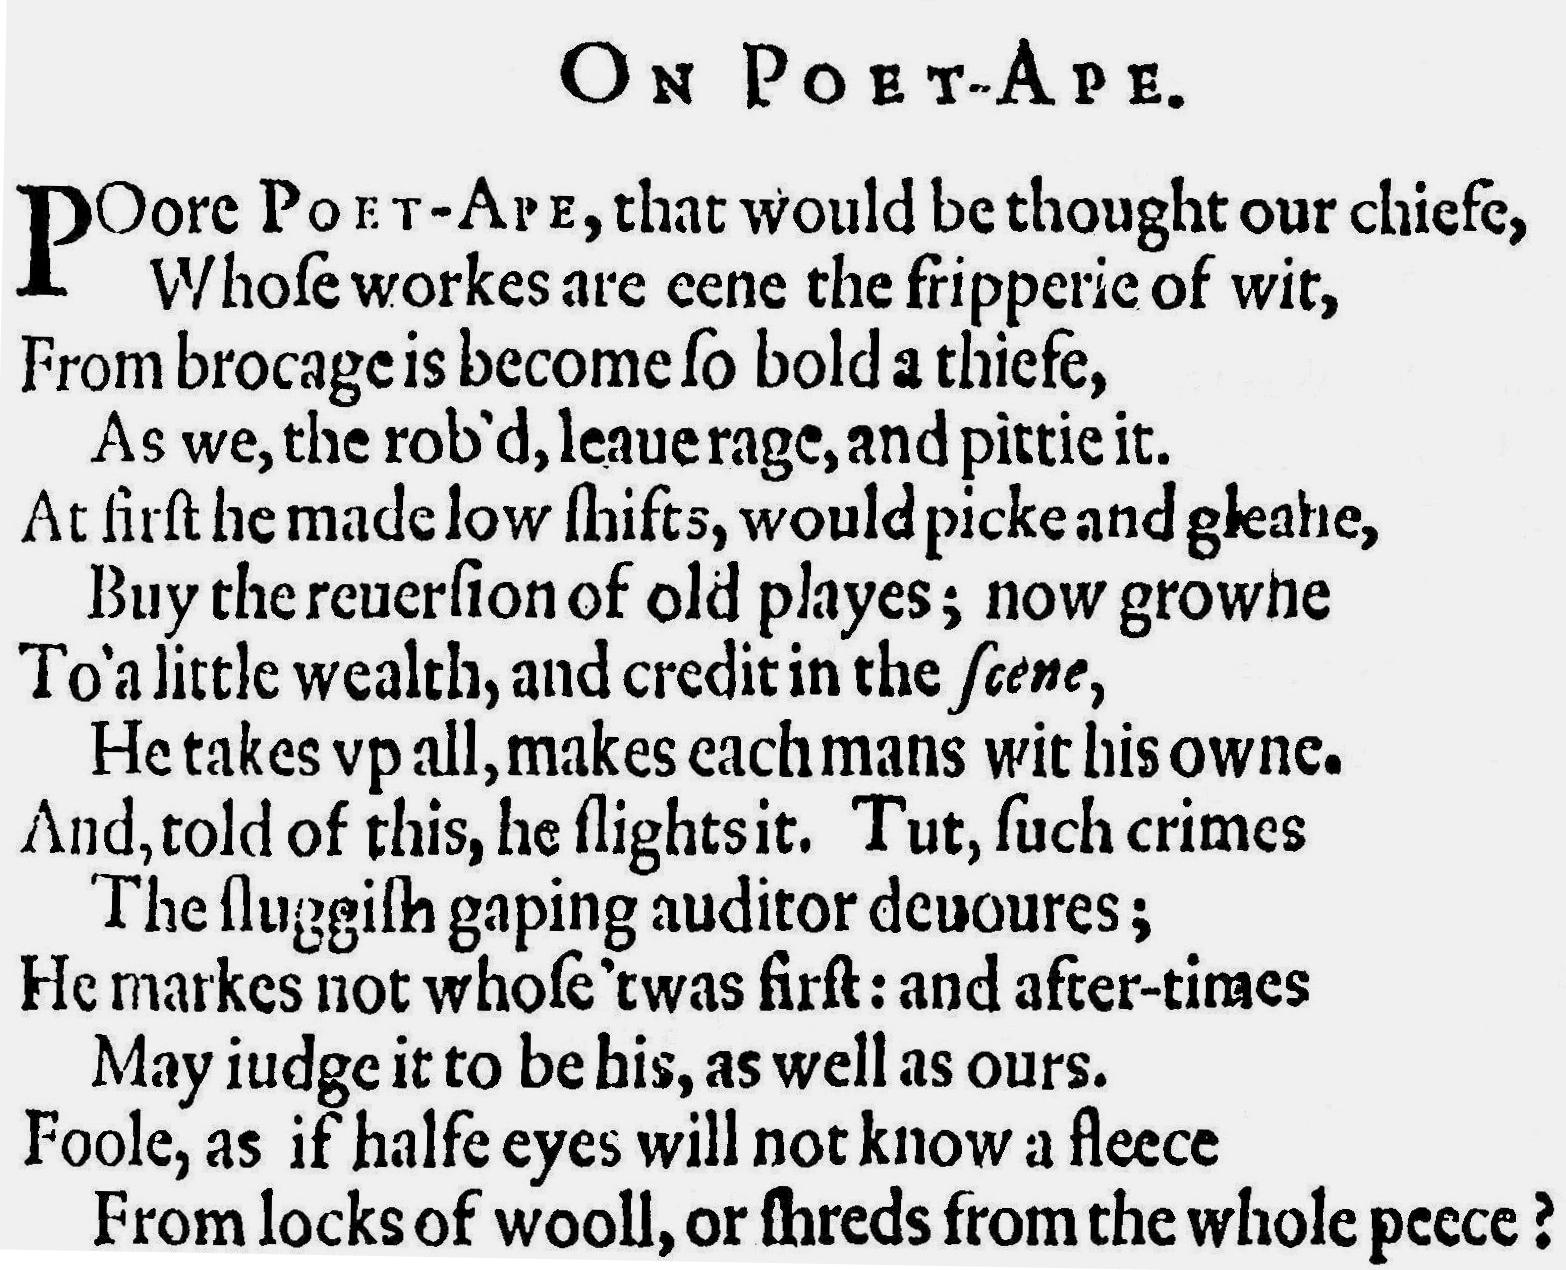 poem of shakespeare Shakespeare's sonnets the sonnets are shakespeare's most popular works, and a few of them, such as sonnet 18 (shall i compare thee to a summer's day), sonnet 116 (let me not to the marriage.